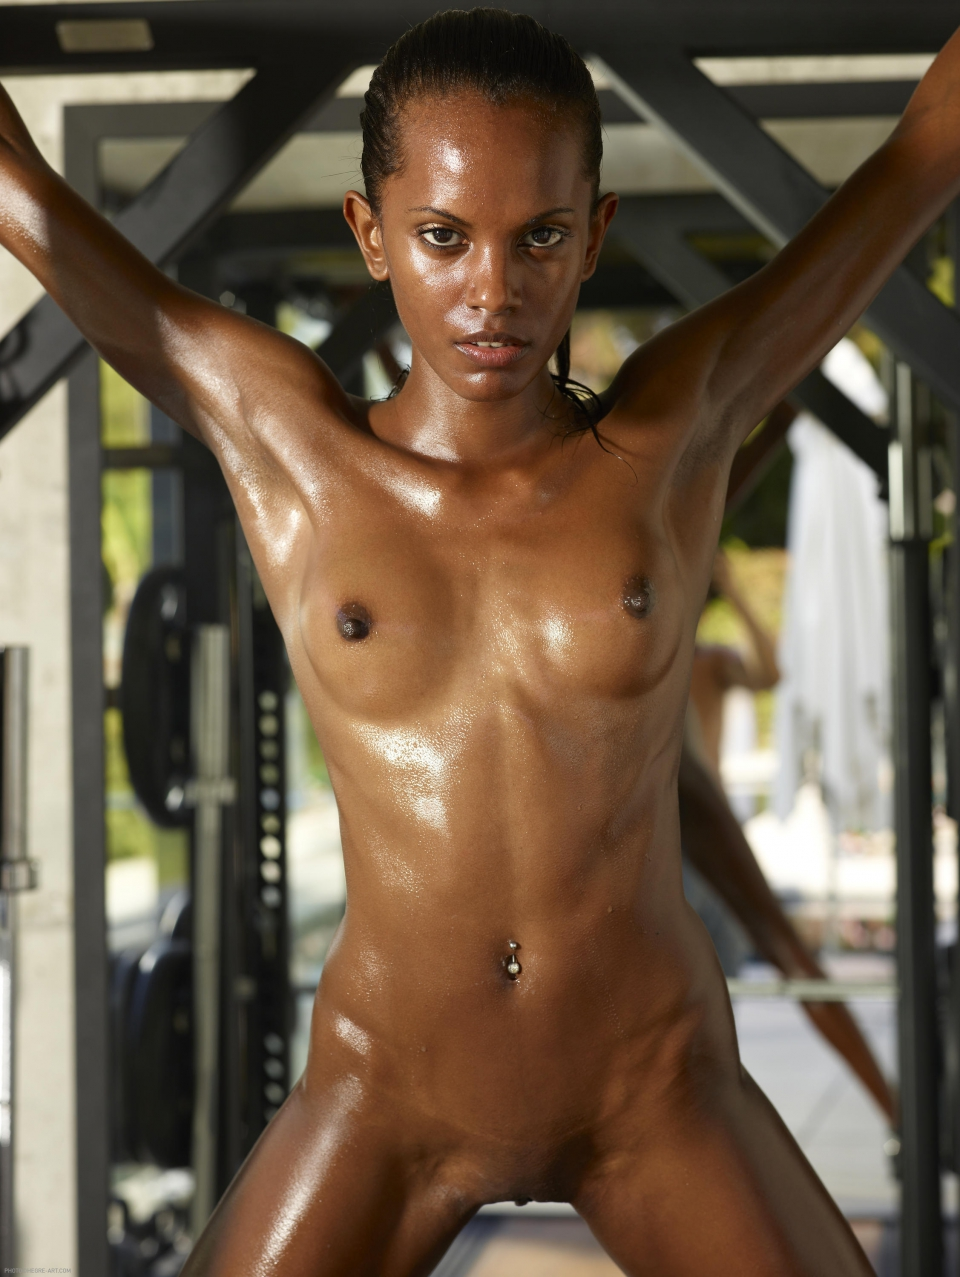 Skinny Nude Black Women - Interracial-2361